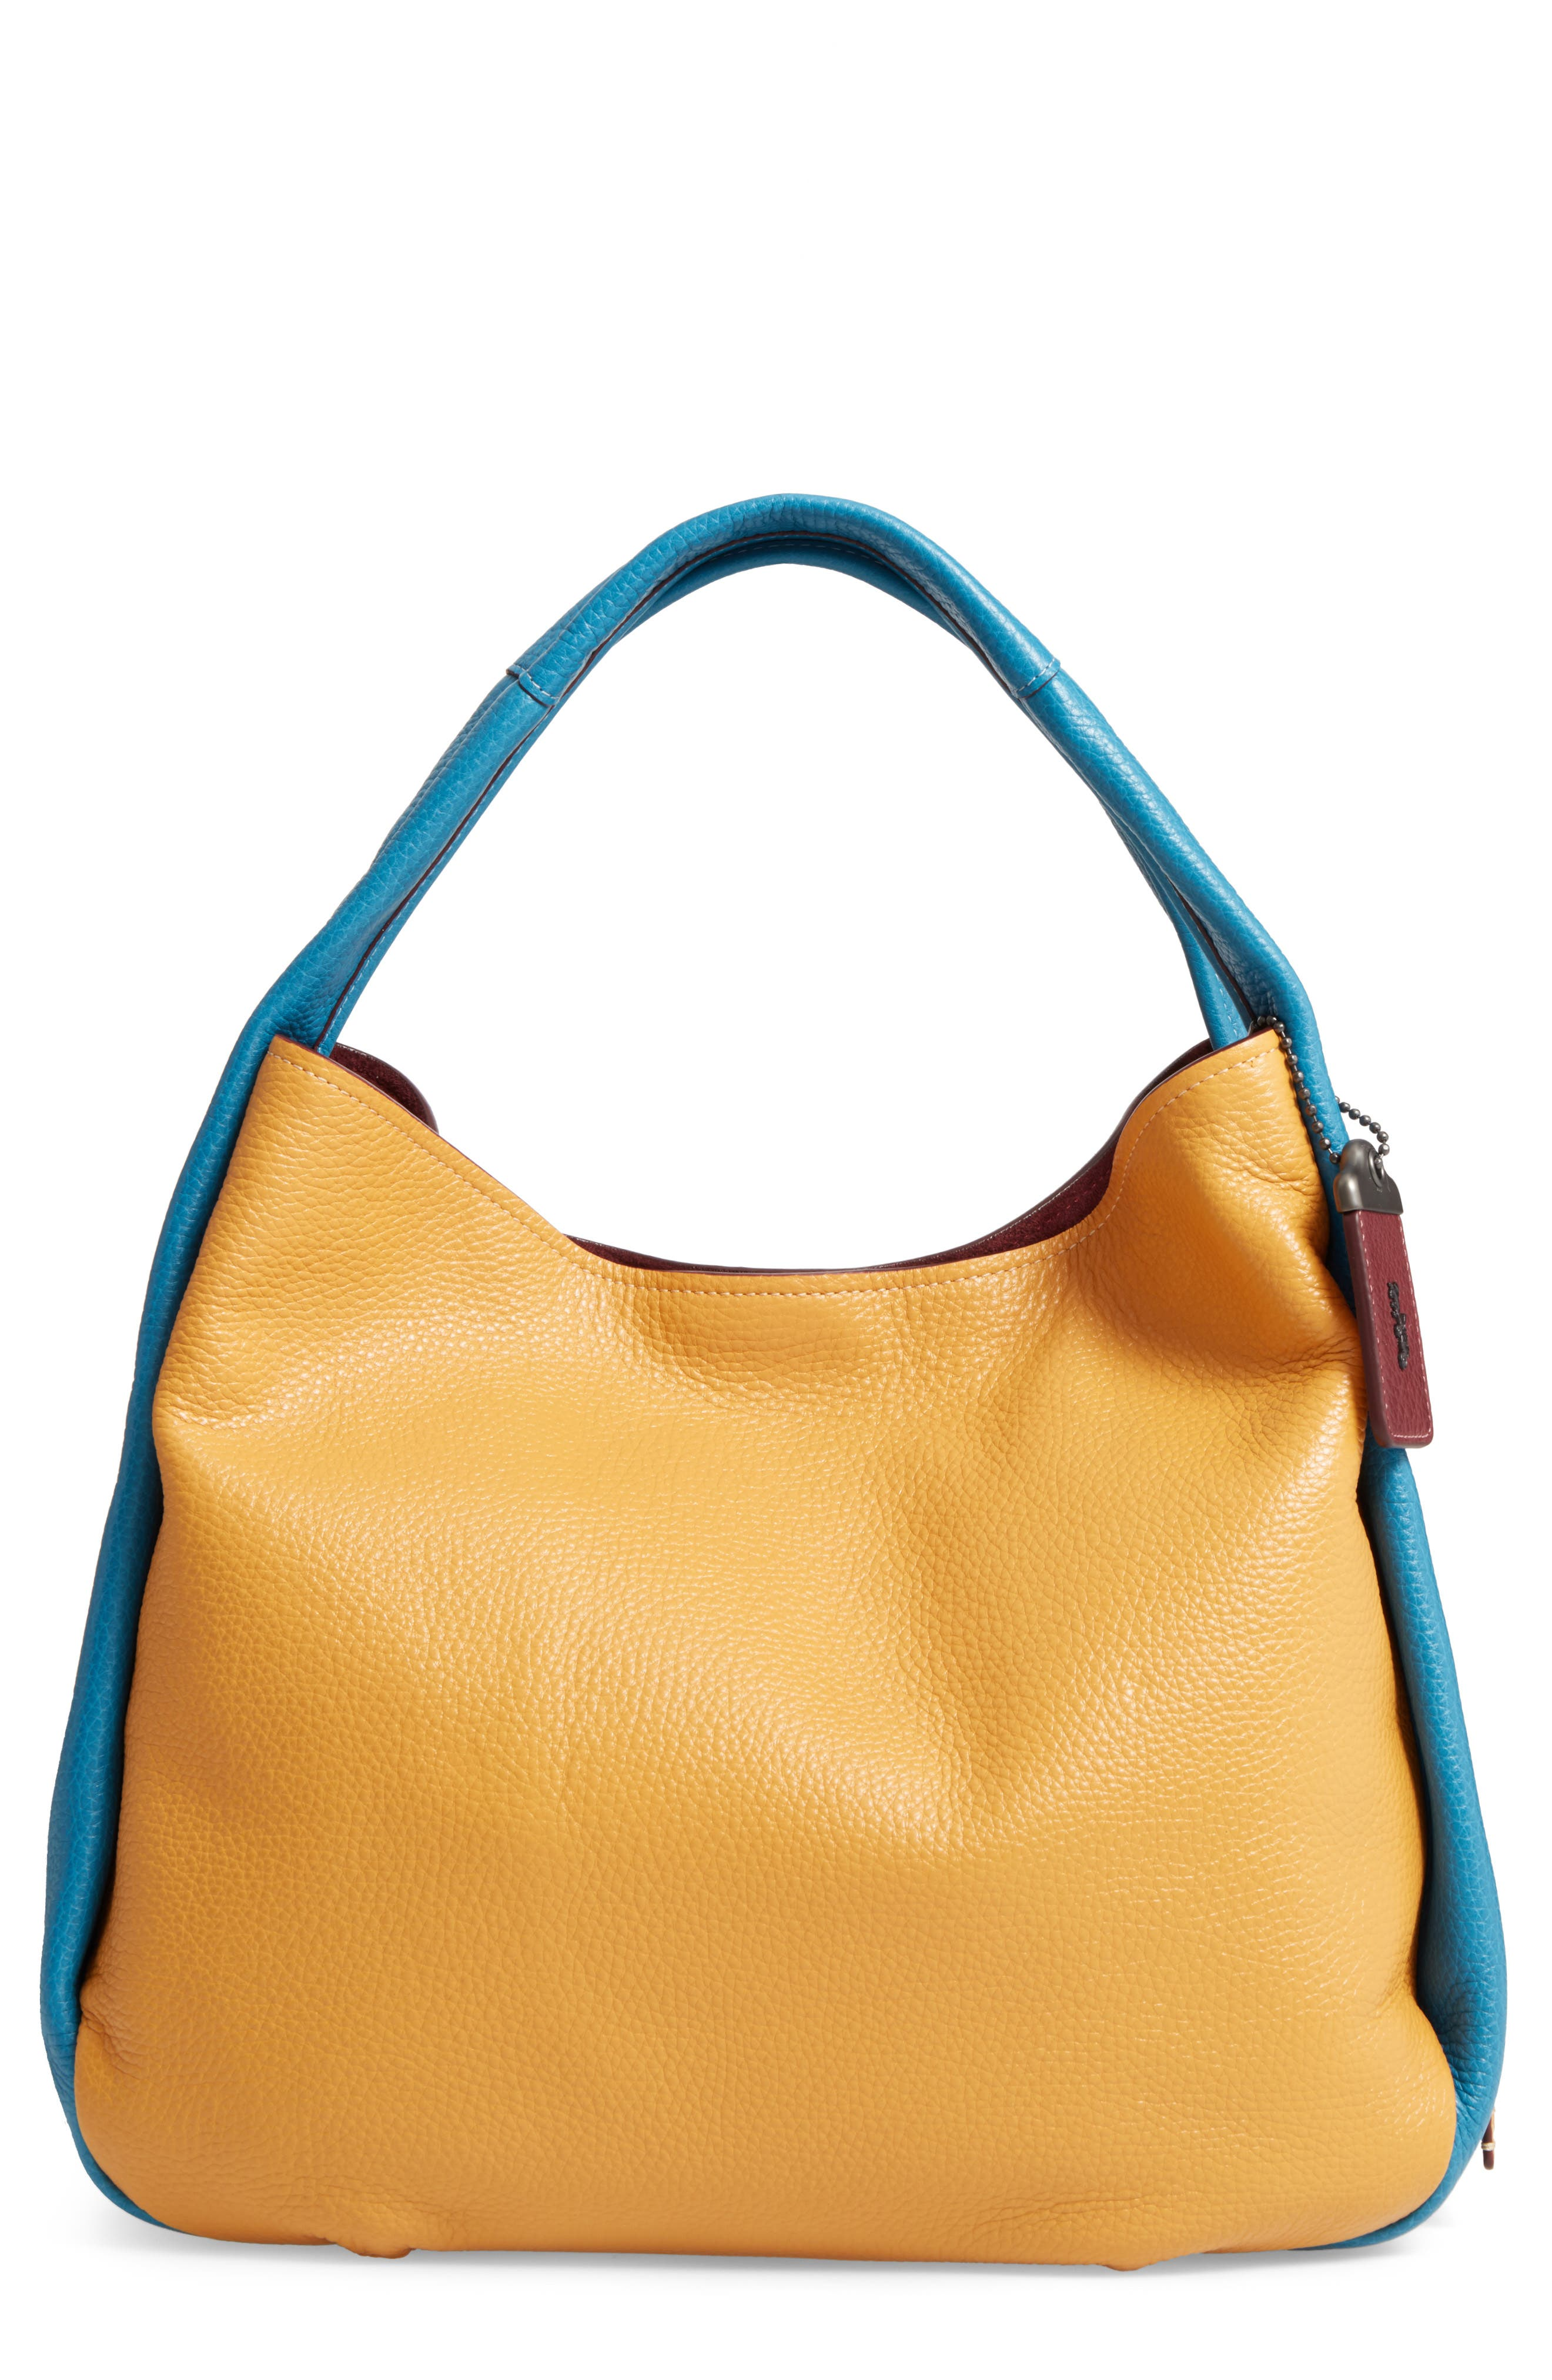 Colorblock Bandit Leather Hobo Bag,                         Main,                         color, Goldenrod Multi